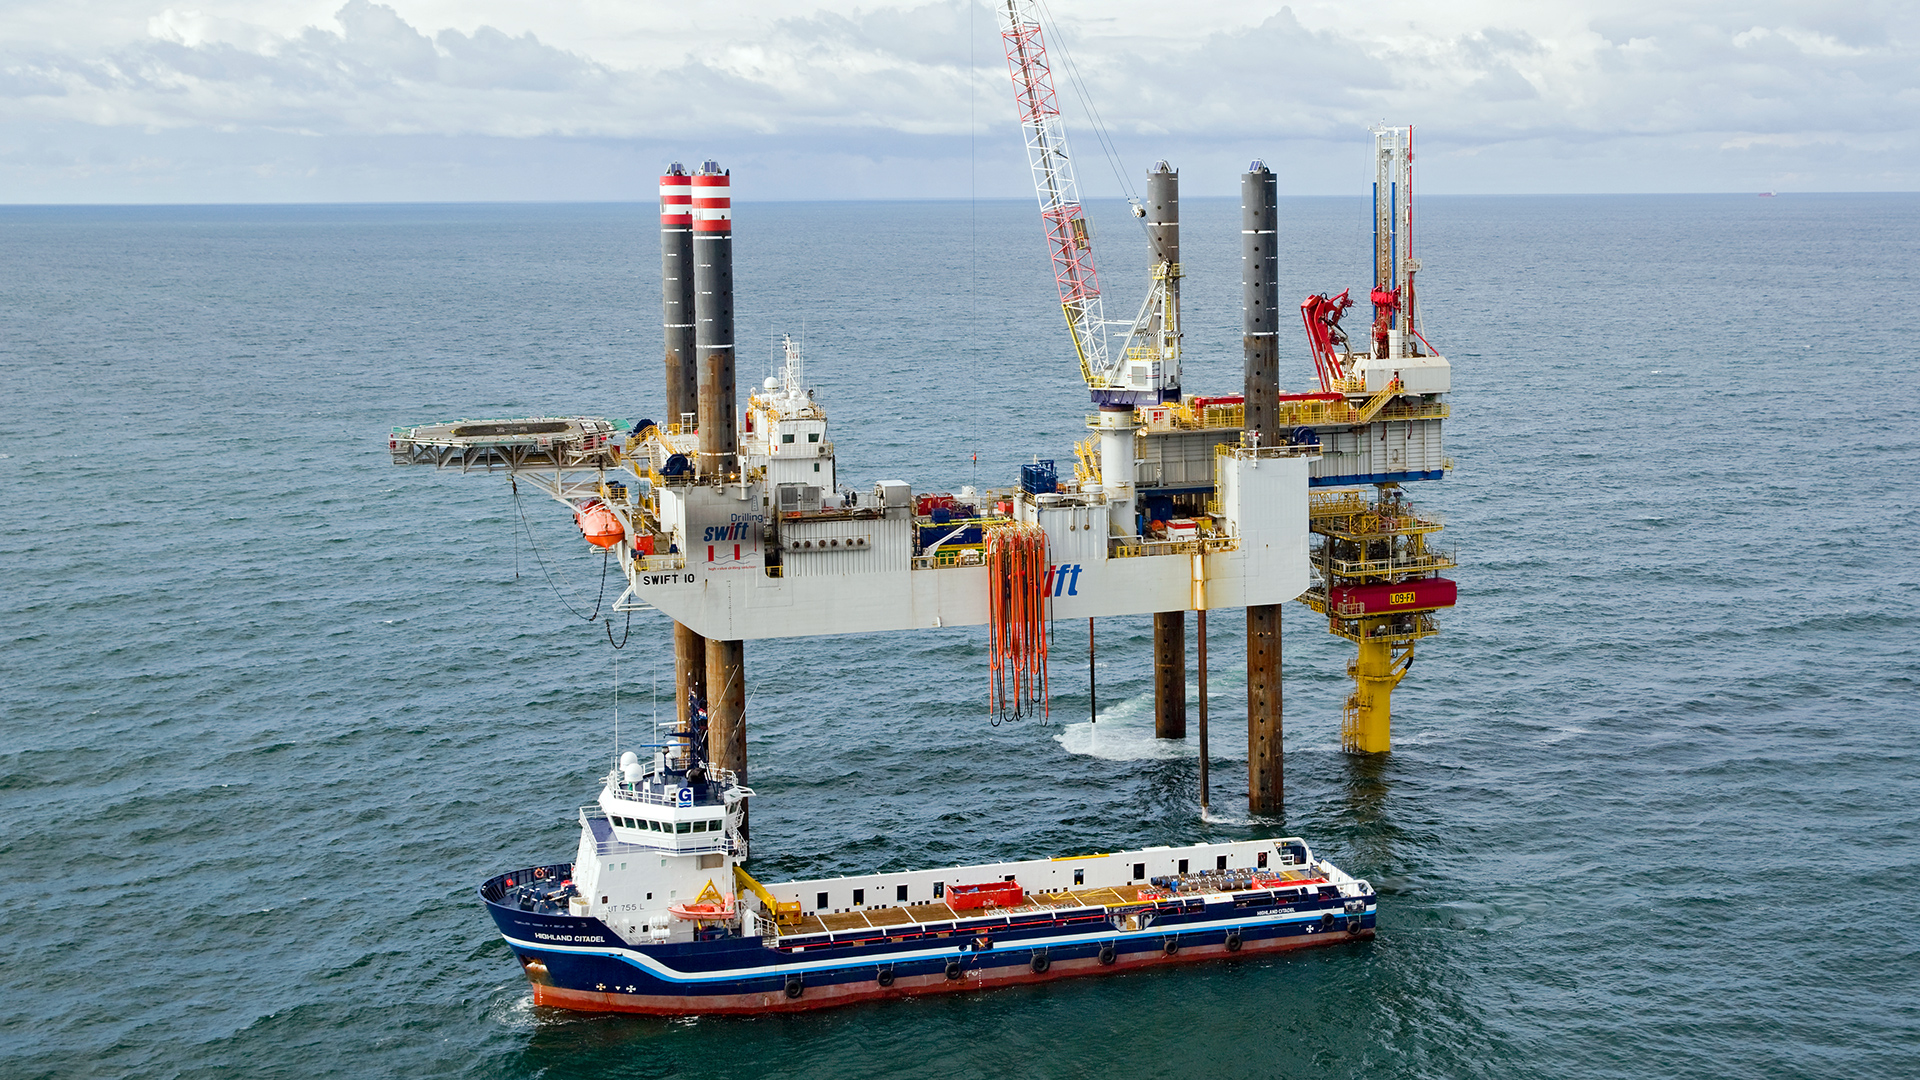 Offshore jack-up operations in the North Sea